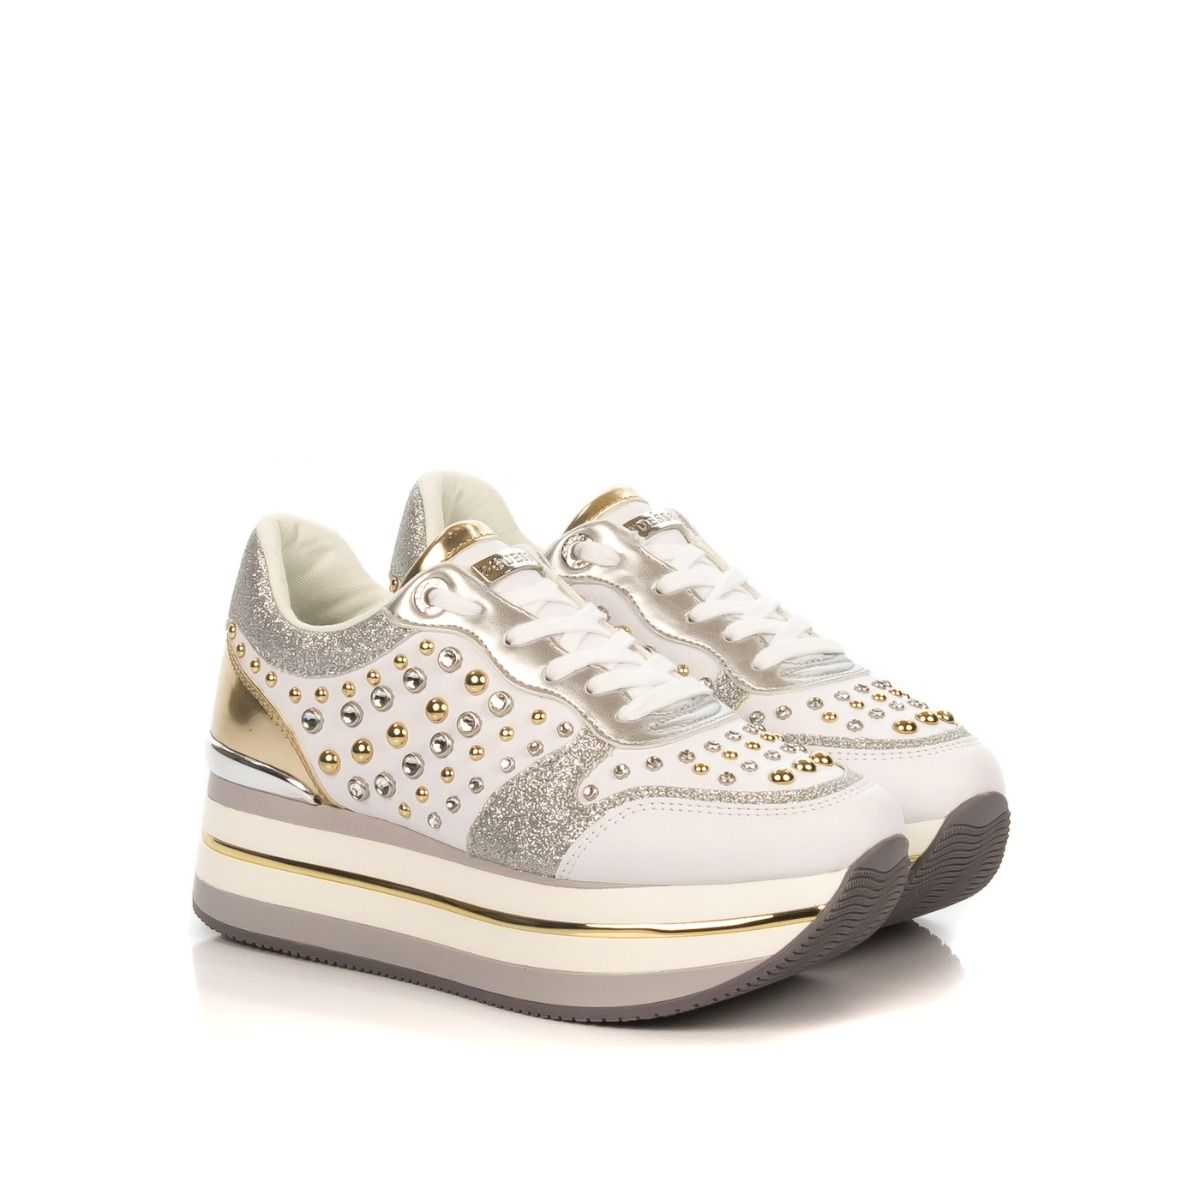 Sneakers donna|GUESS FL5HAM ELE12 similpelle bianco con